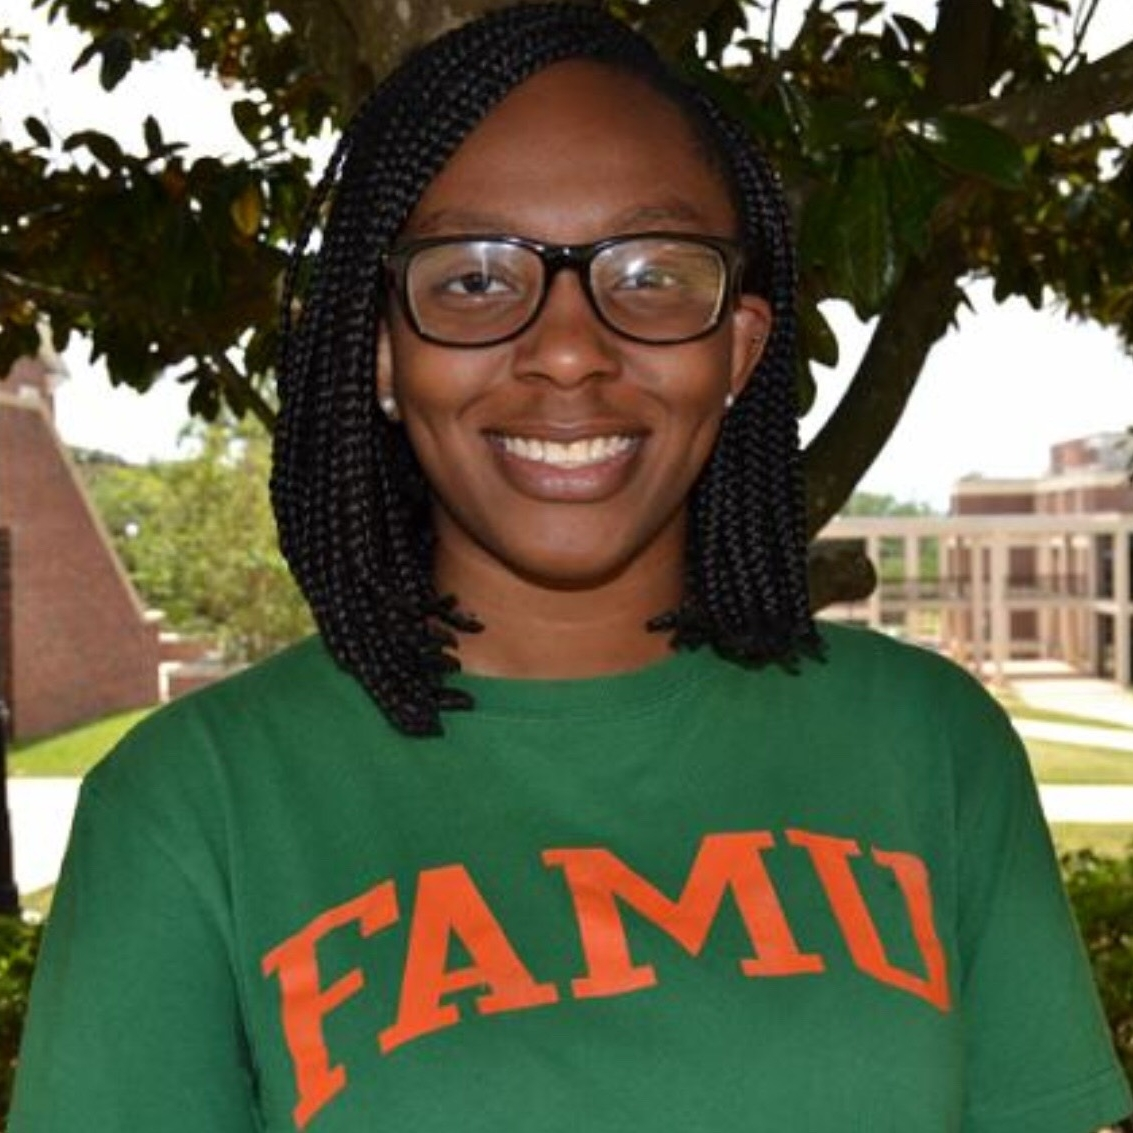 Chidinma Ogbenna   Doctor of Pharmacy Candidate, 2021  Florida Agricultural and Mechanical University  Born to Nigerian parents and raised in the beautiful city of Miami, Florida, Chidinma enjoys hanging out with her friends, all things science-related and spontaneous adventures. A lover of sushi and giving back to her community, Chidinma yearns to one day open her own independent pharmacy in the heart of her village in southeast Nigeria.